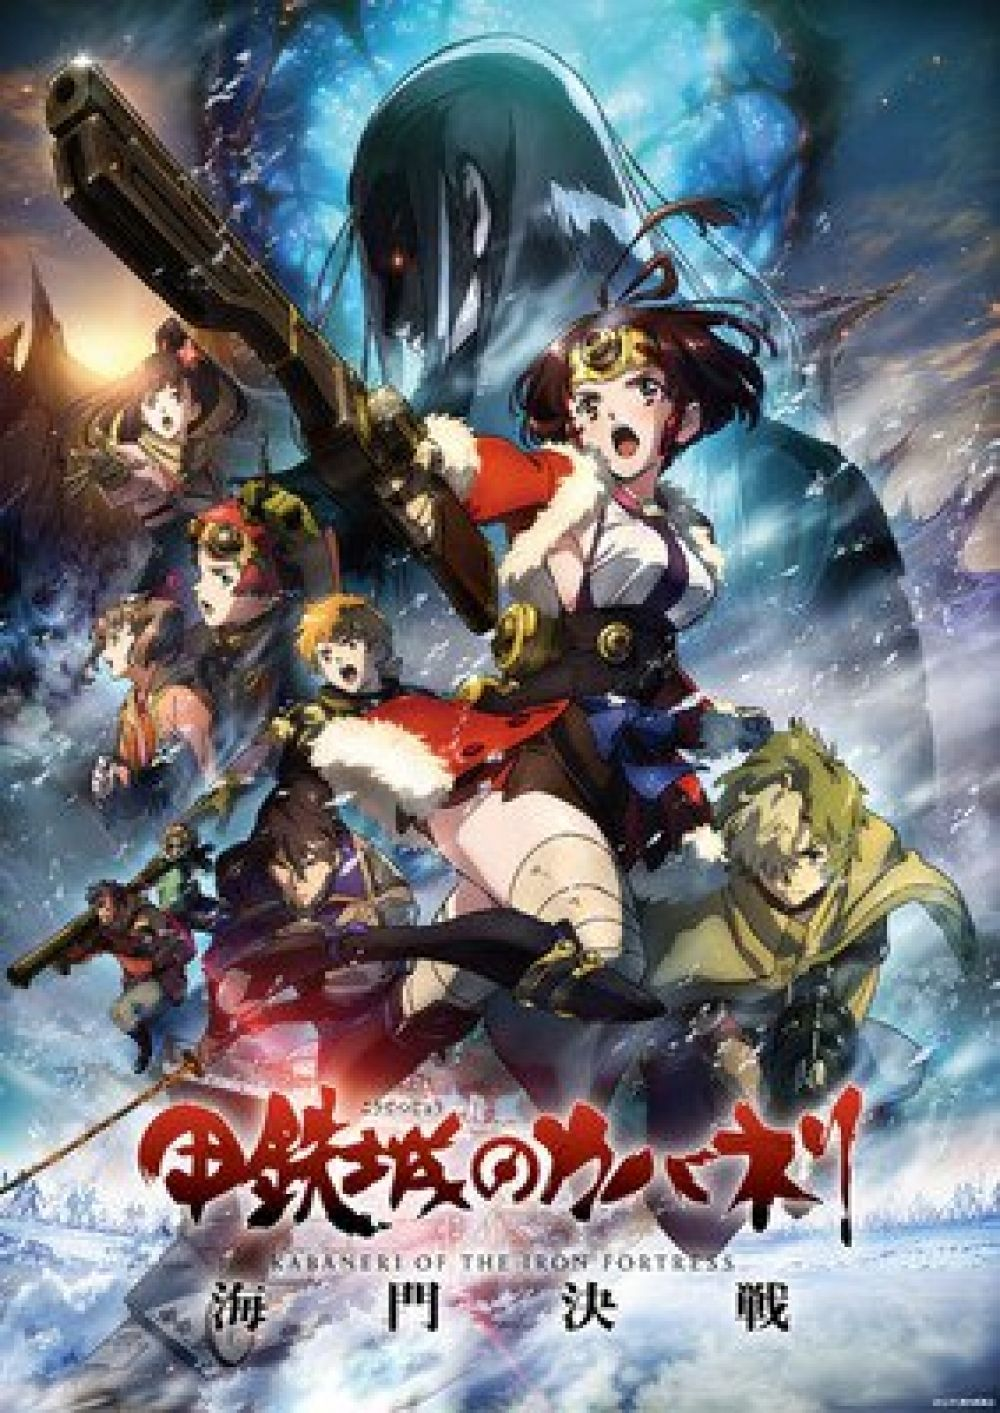 Kabaneri Sequel Film Will Have Netflix Release On September 13 Iron Fortress Anime Movies Anime Films